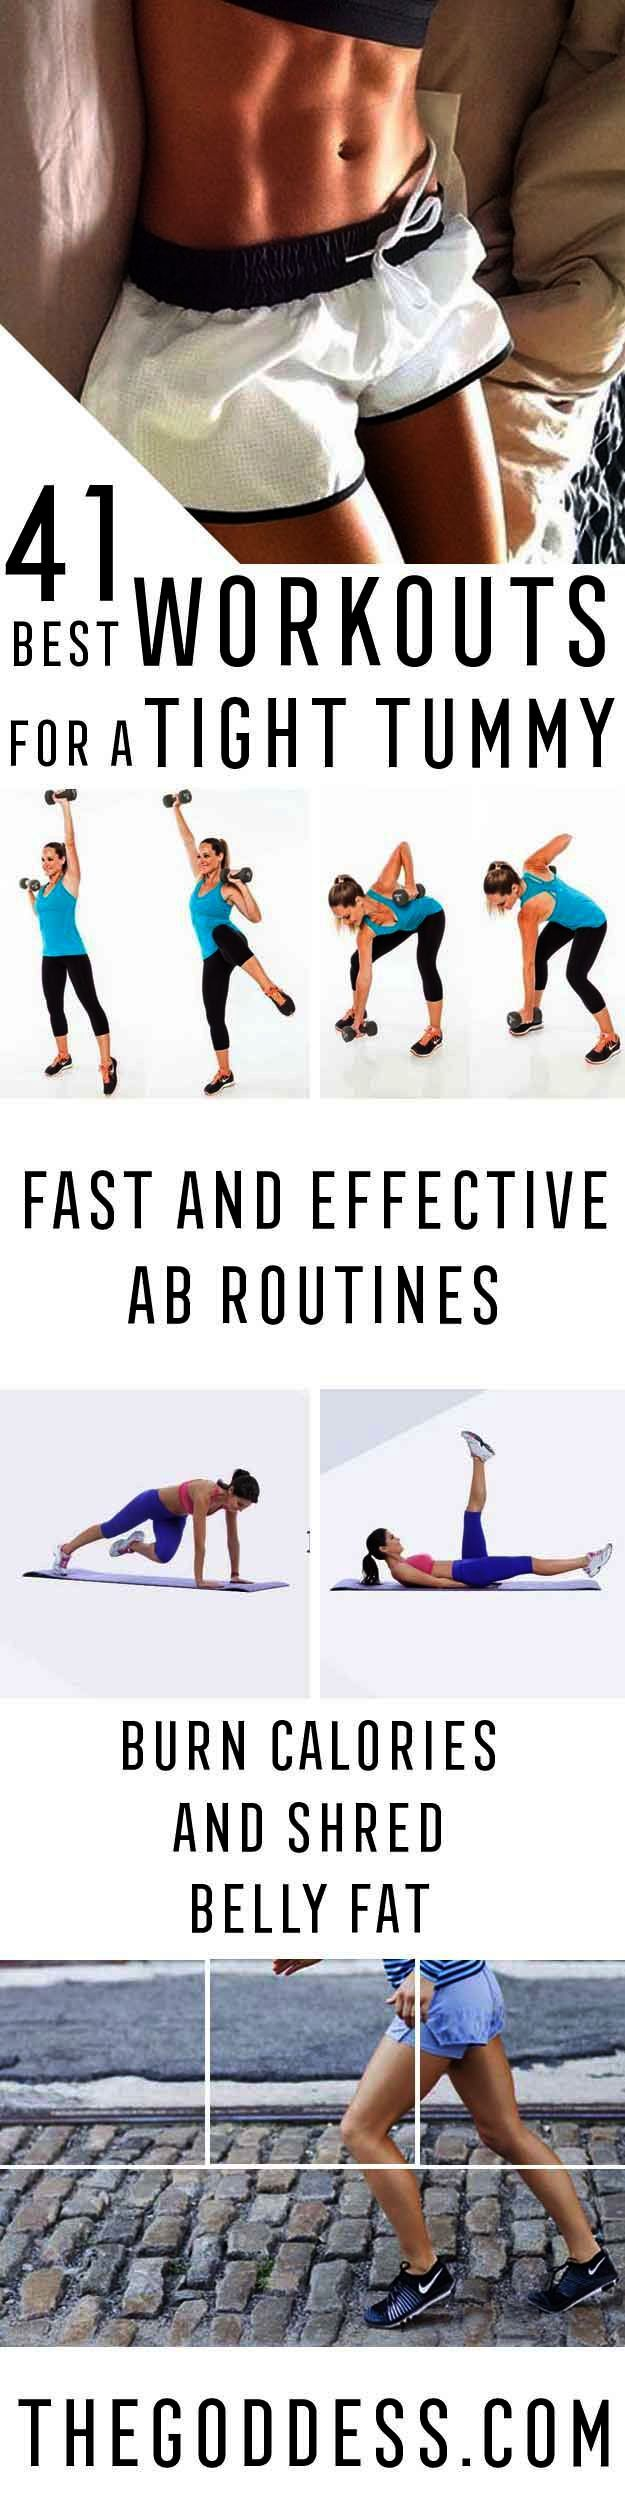 Ab Workouts Guys beyond Standing Ab Exercises With Resistance Bands ... Ab Exercises For Posture, Ab Coaster Ab Workout Machine #abexercisemachine